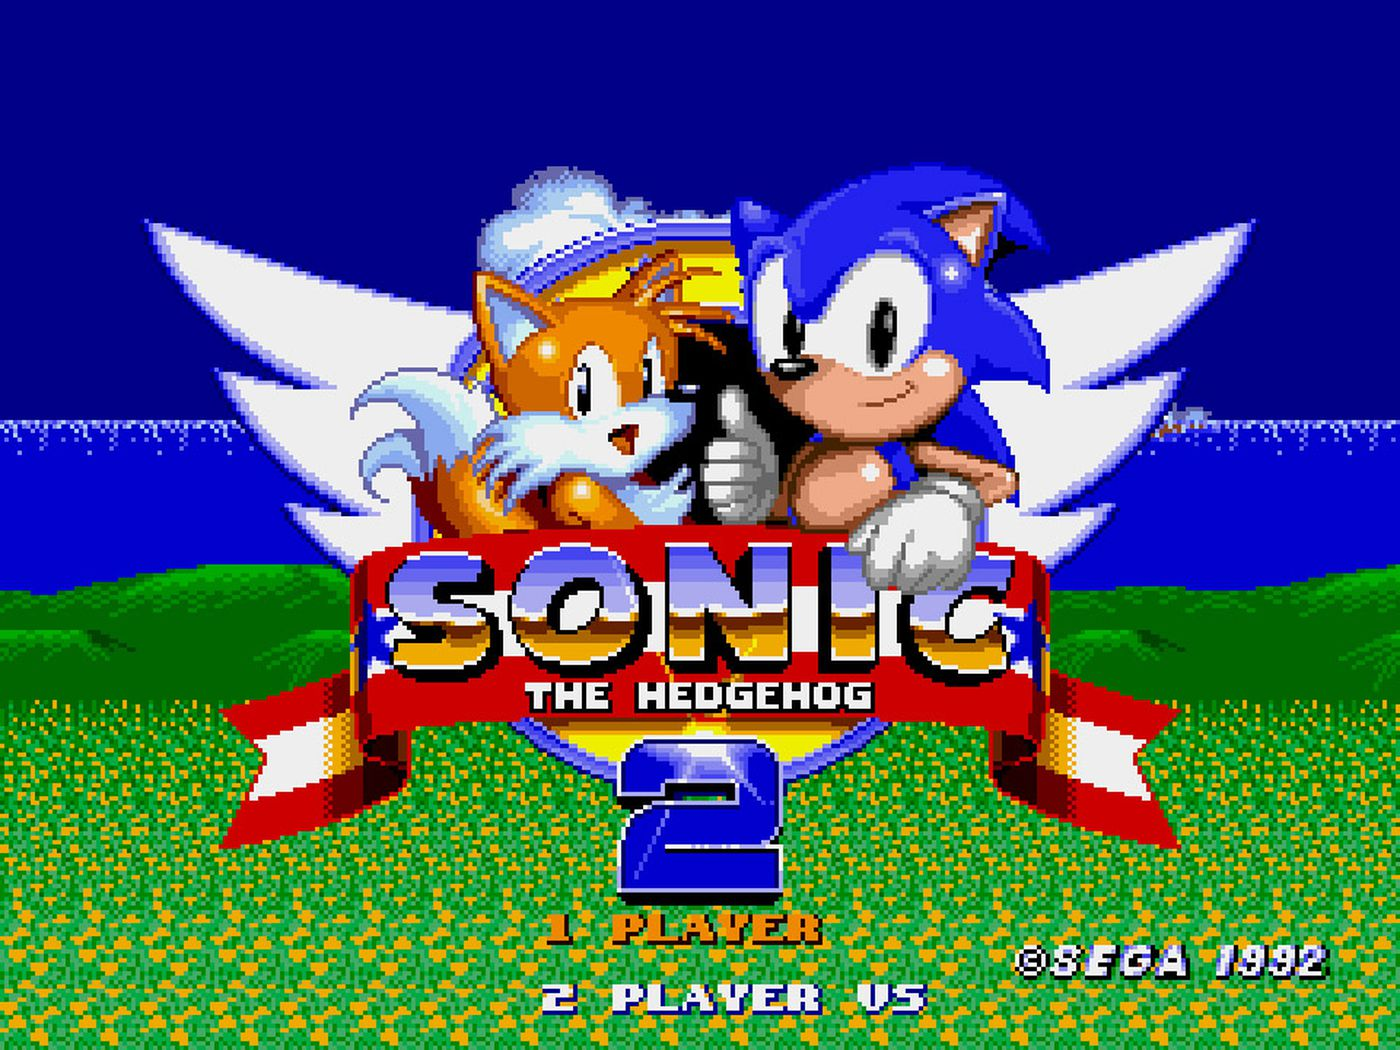 Sonic The Hedgehog 2 For Nintendo Switch Adds New Features To The